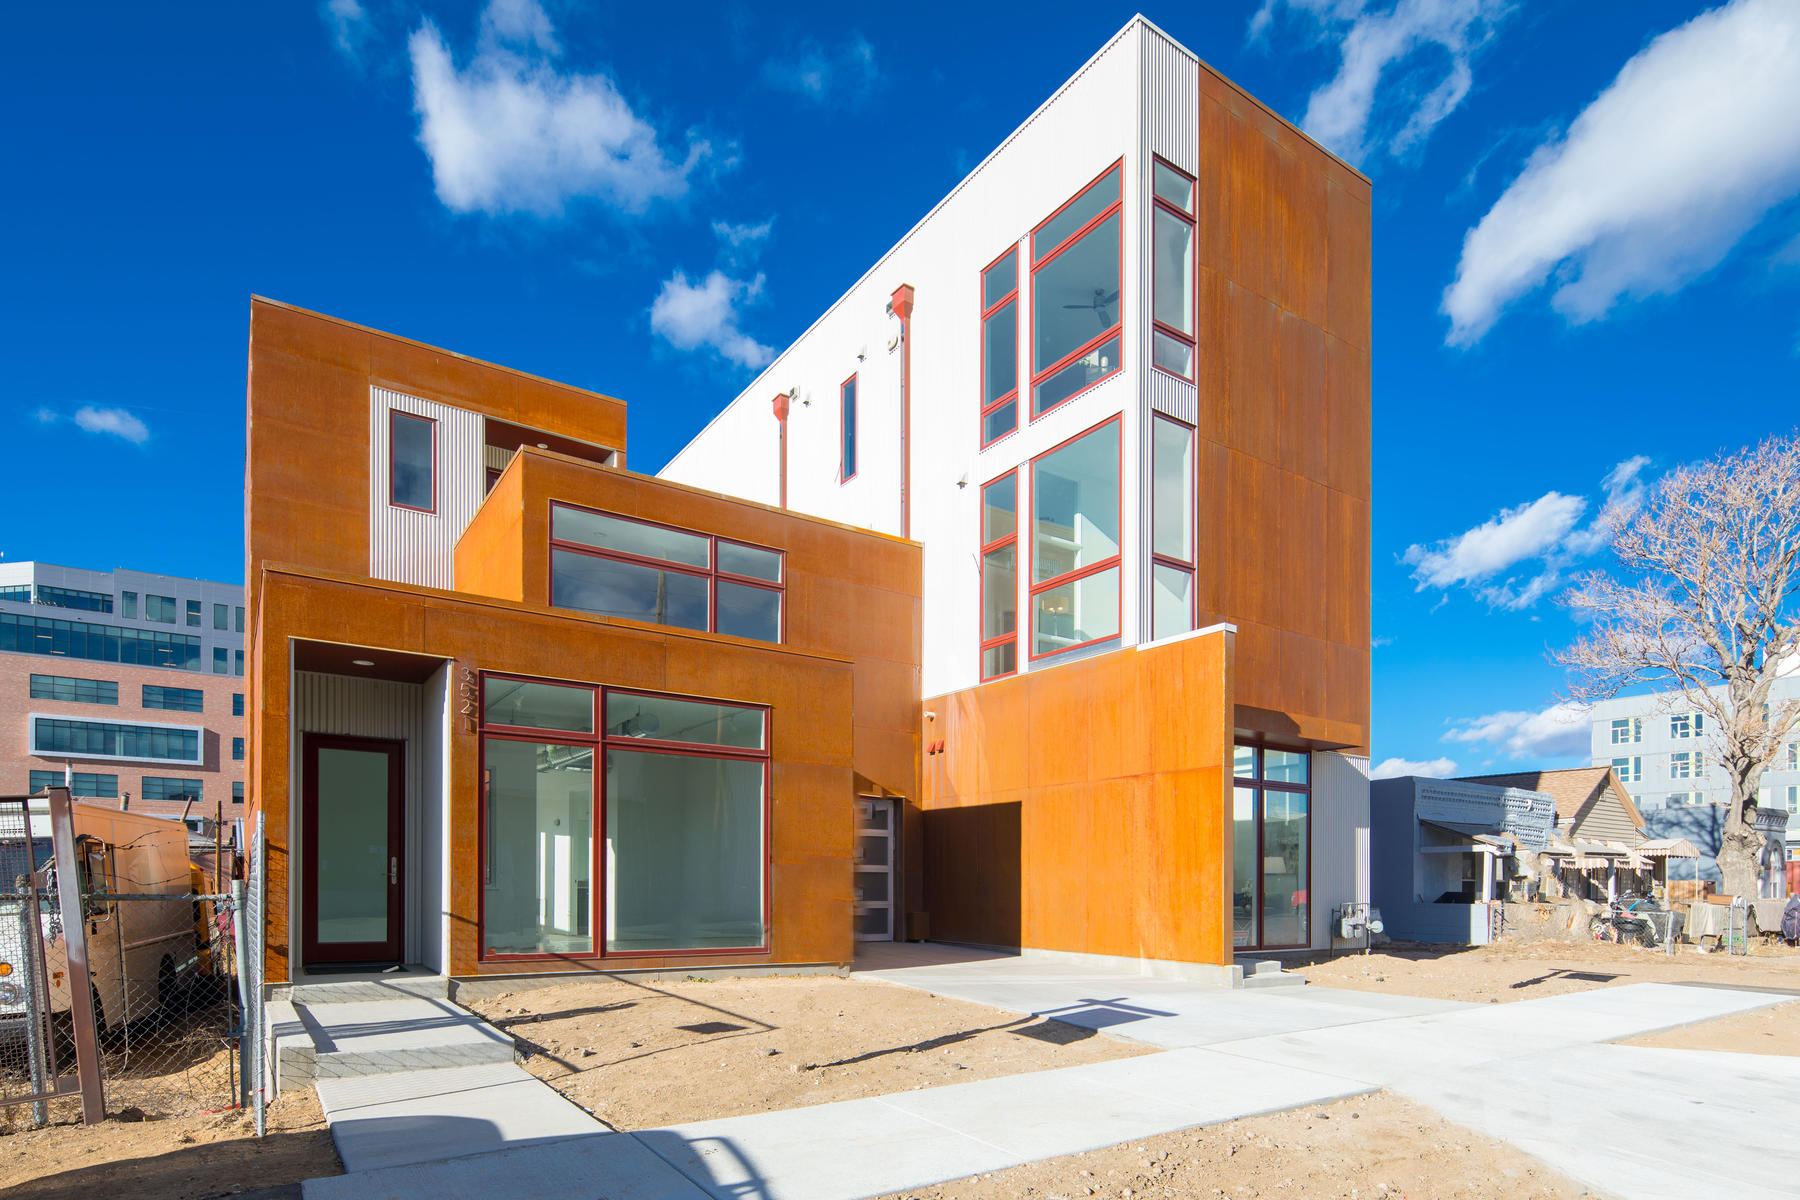 Single Family Home for Active at Unique & Modern in RiNo 3523 Wynkoop Street Denver, Colorado 80216 United States